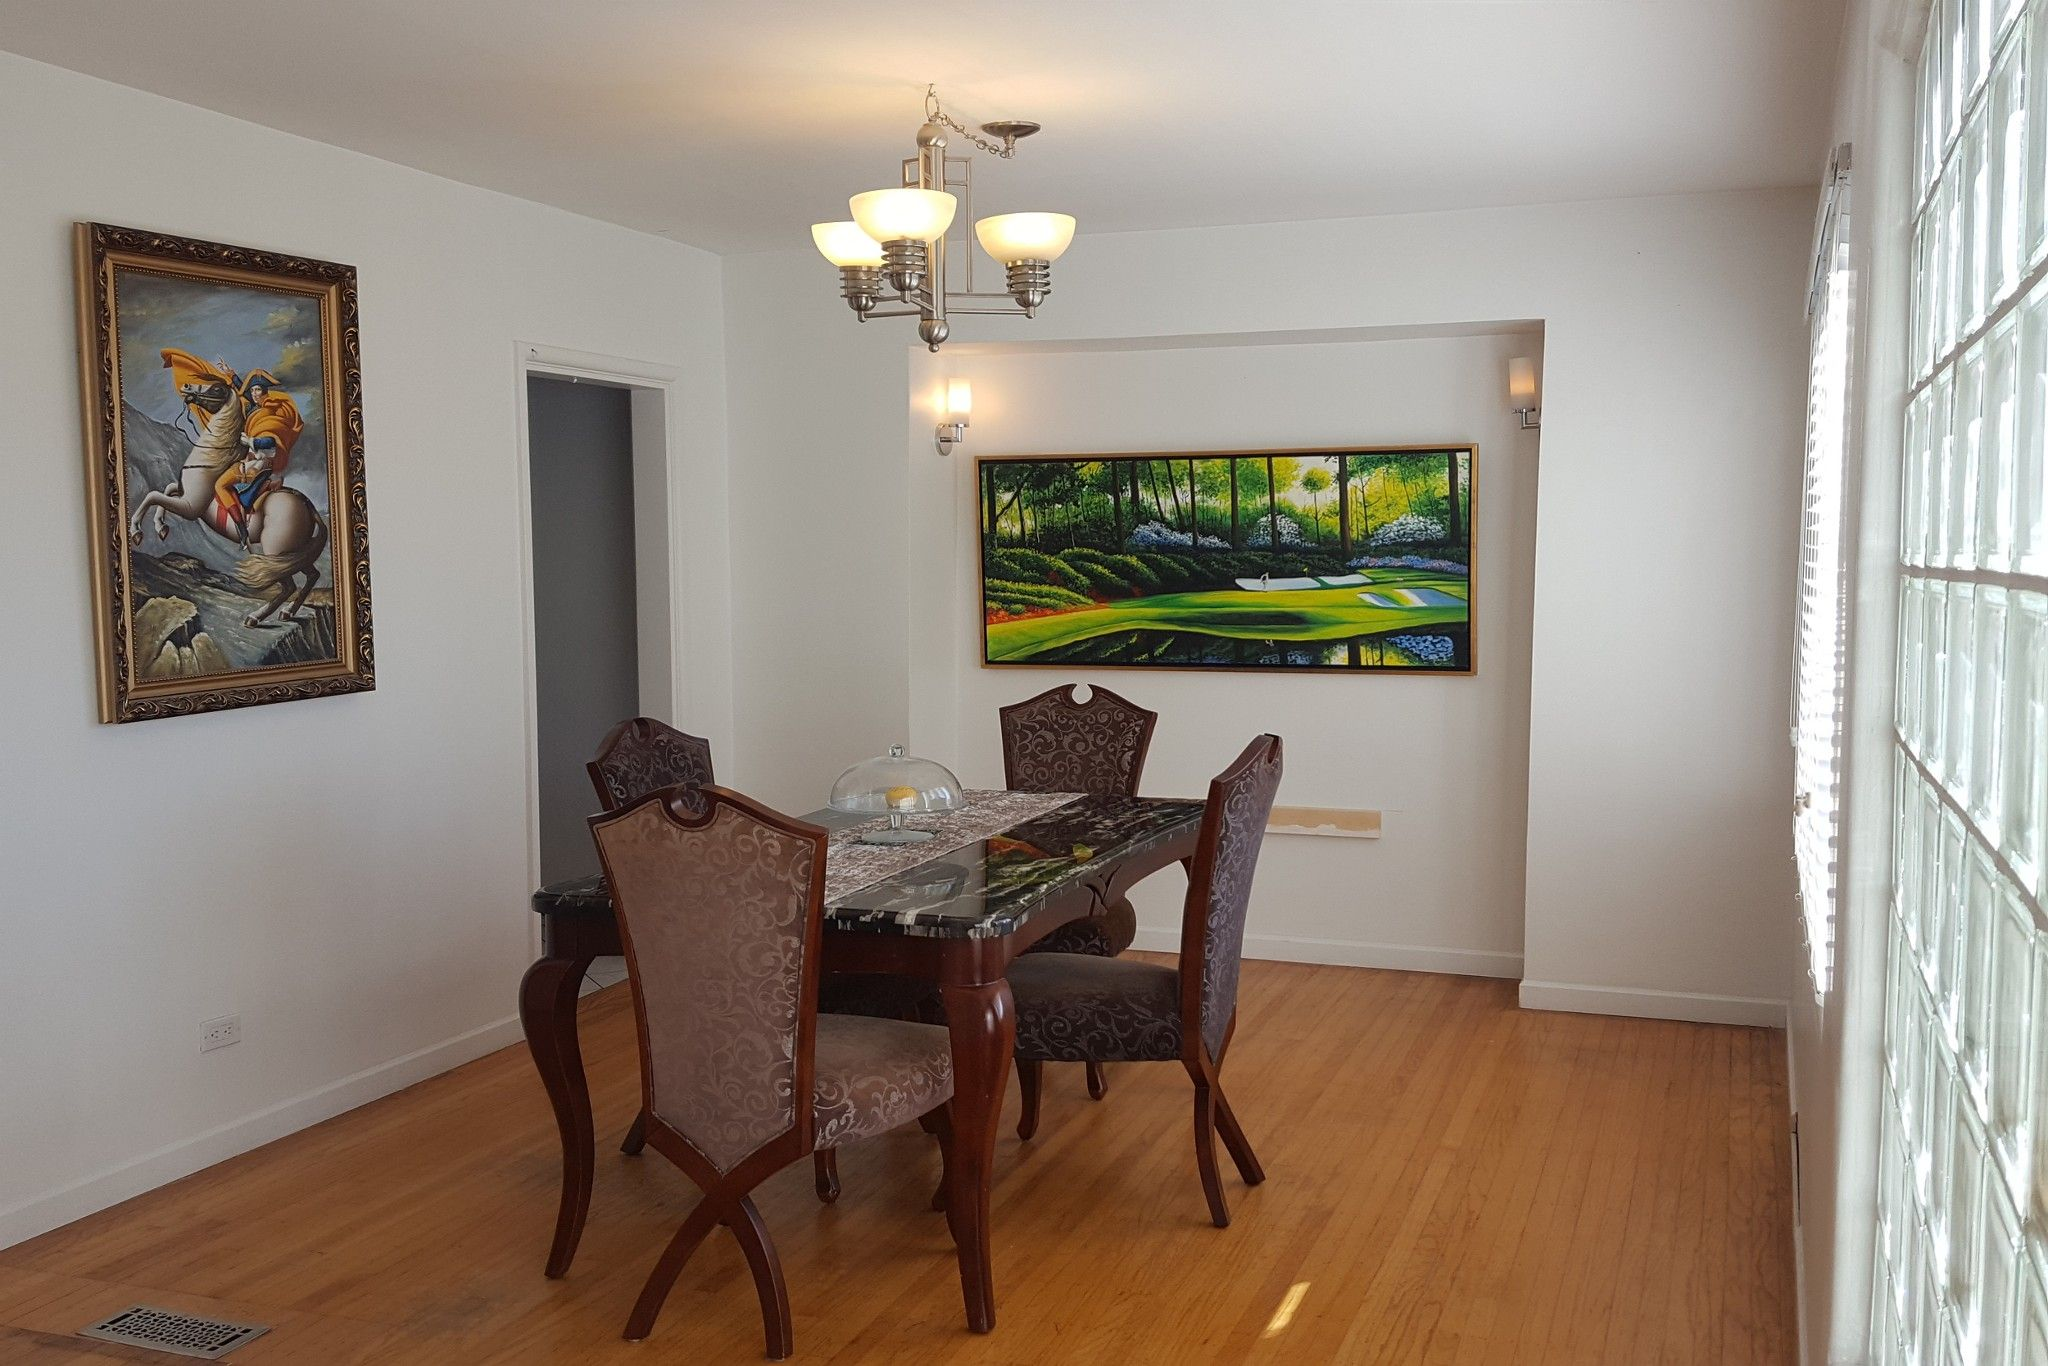 Photo 4: Photos: 4888 PINE Crescent in Vancouver: Shaughnessy House for sale (Vancouver West)  : MLS®# R2441205